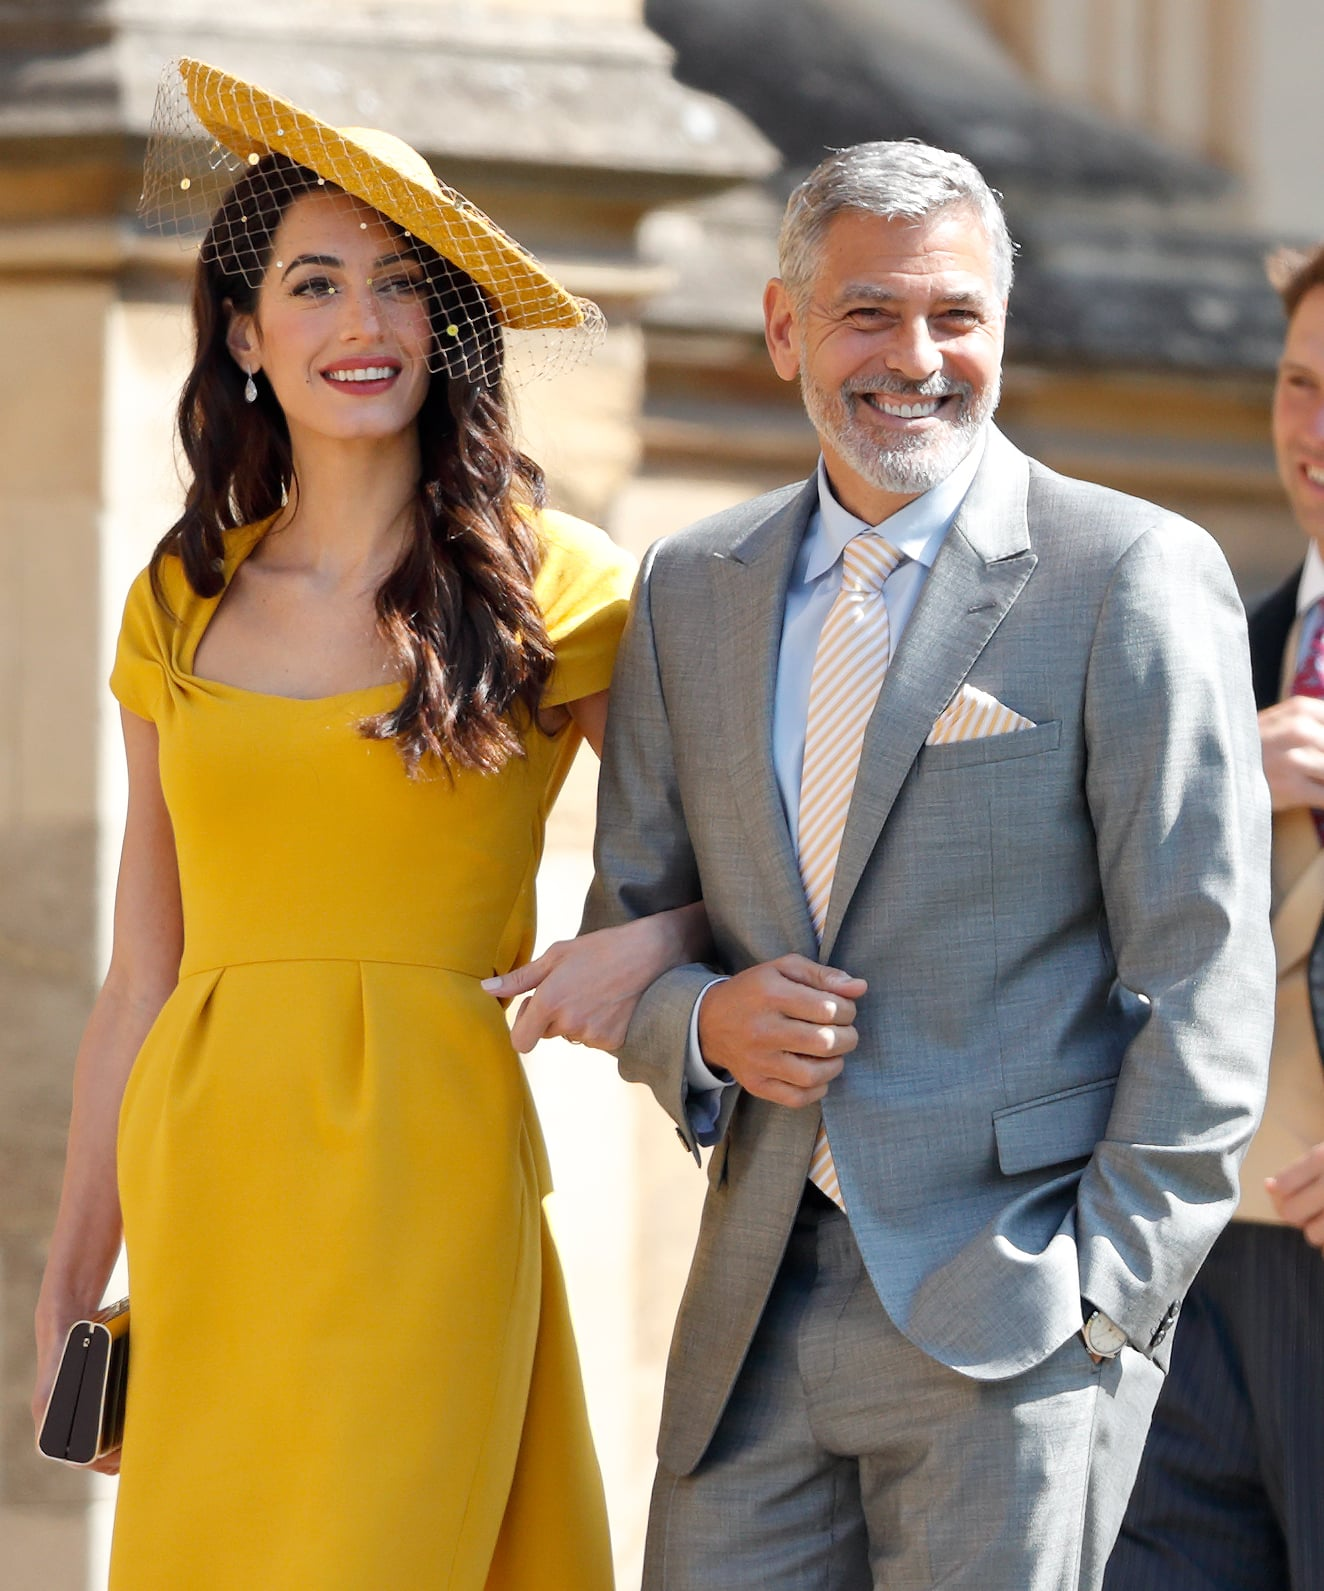 WINDSOR, UNITED KINGDOM - MAY 19: (EMBARGOED FOR PUBLICATION IN UK NEWSPAPERS UNTIL 24 HOURS AFTER CREATE DATE AND TIME) Amal Clooney and George Clooney attend the wedding of Prince Harry to Ms Meghan Markle at St George's Chapel, Windsor Castle on May 19, 2018 in Windsor, England. Prince Henry Charles Albert David of Wales marries Ms. Meghan Markle in a service at St George's Chapel inside the grounds of Windsor Castle. Among the guests were 2200 members of the public, the royal family and Ms. Markle's Mother Doria Ragland. (Photo by Max Mumby/Indigo/Getty Images)